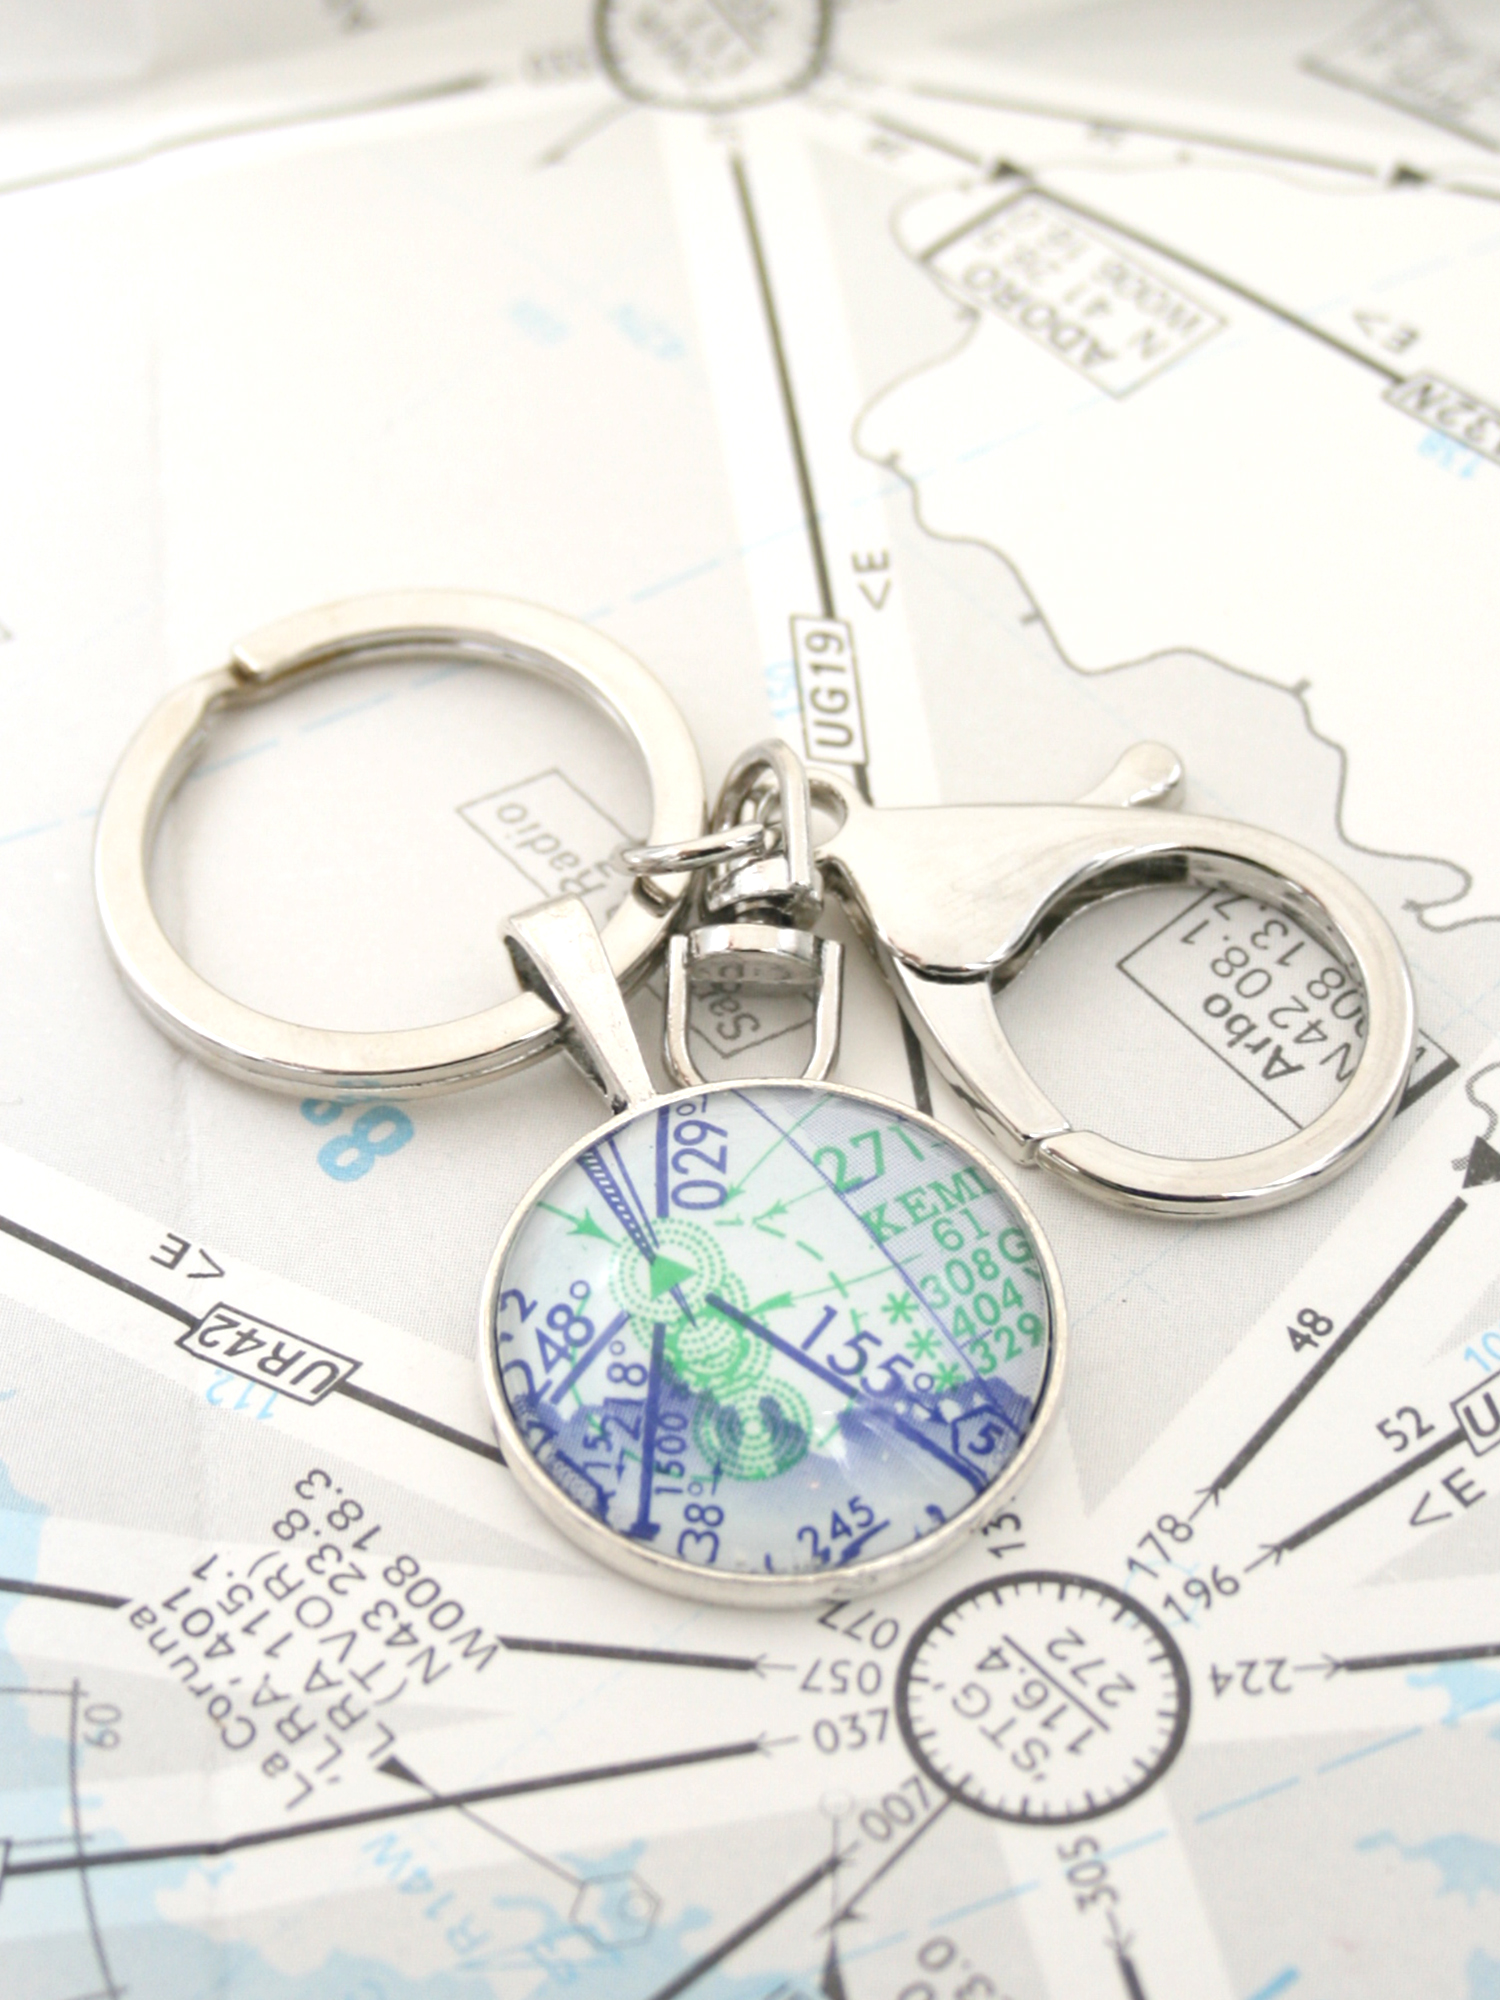 personalized keychain for the pilot with custom airport map